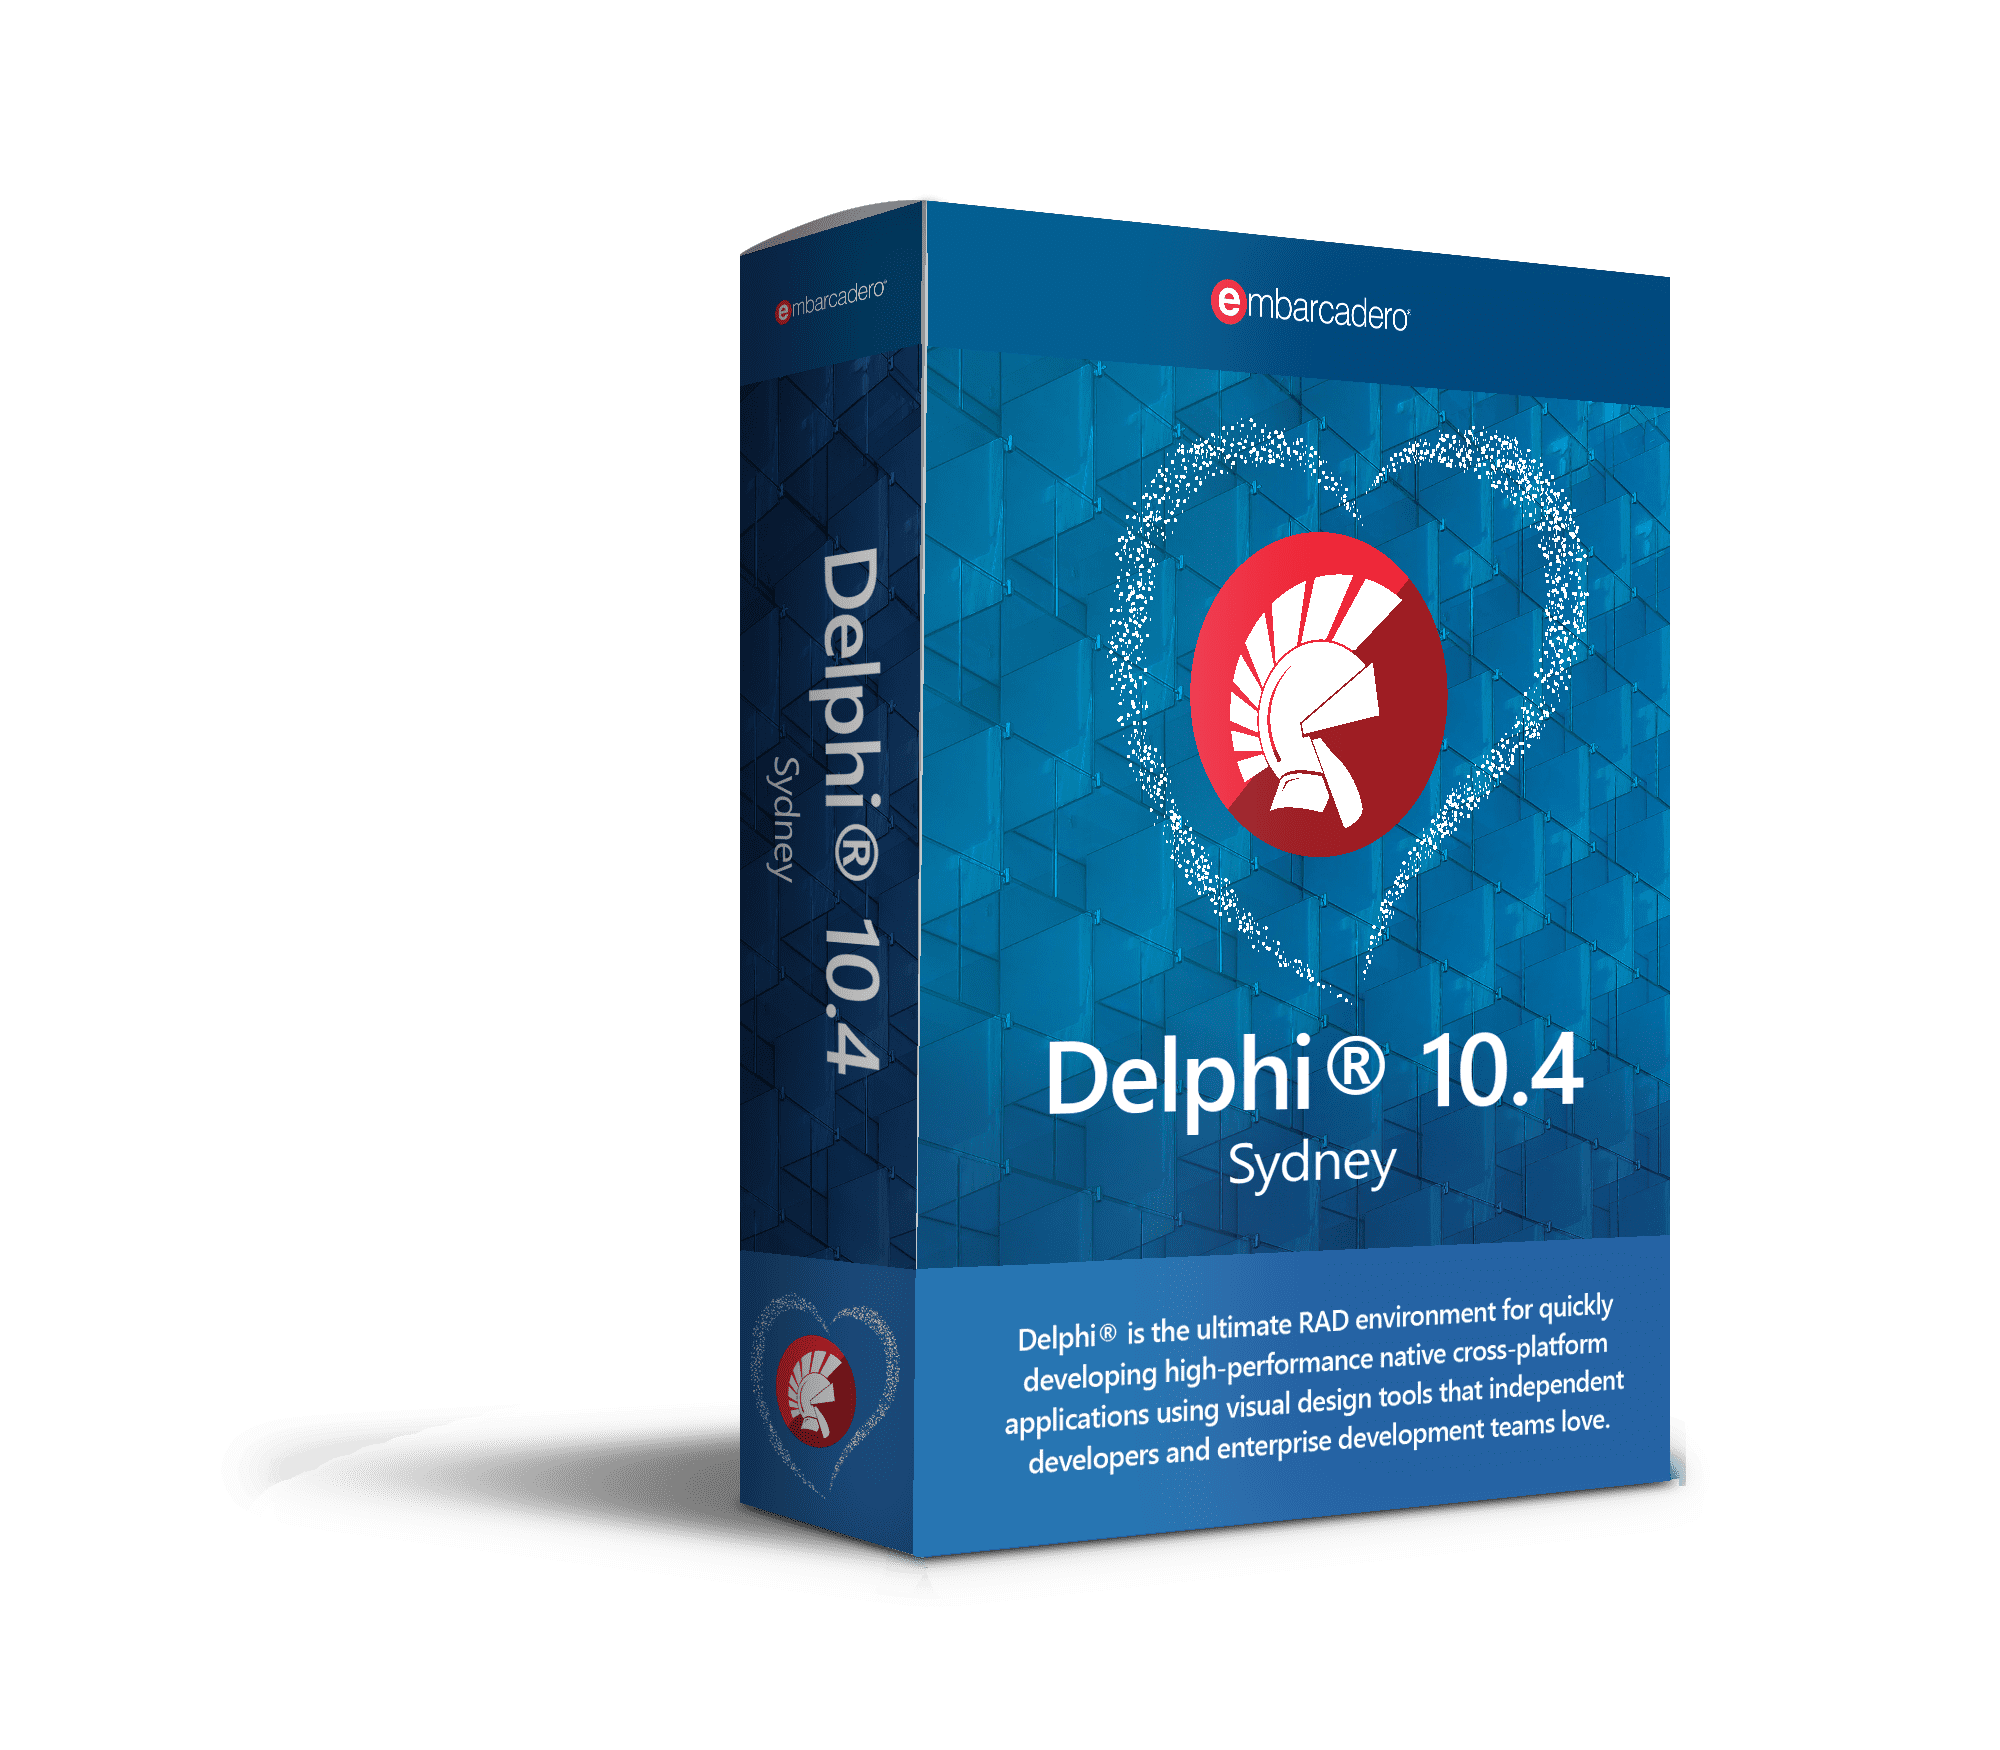 delphi10.4 box mock up